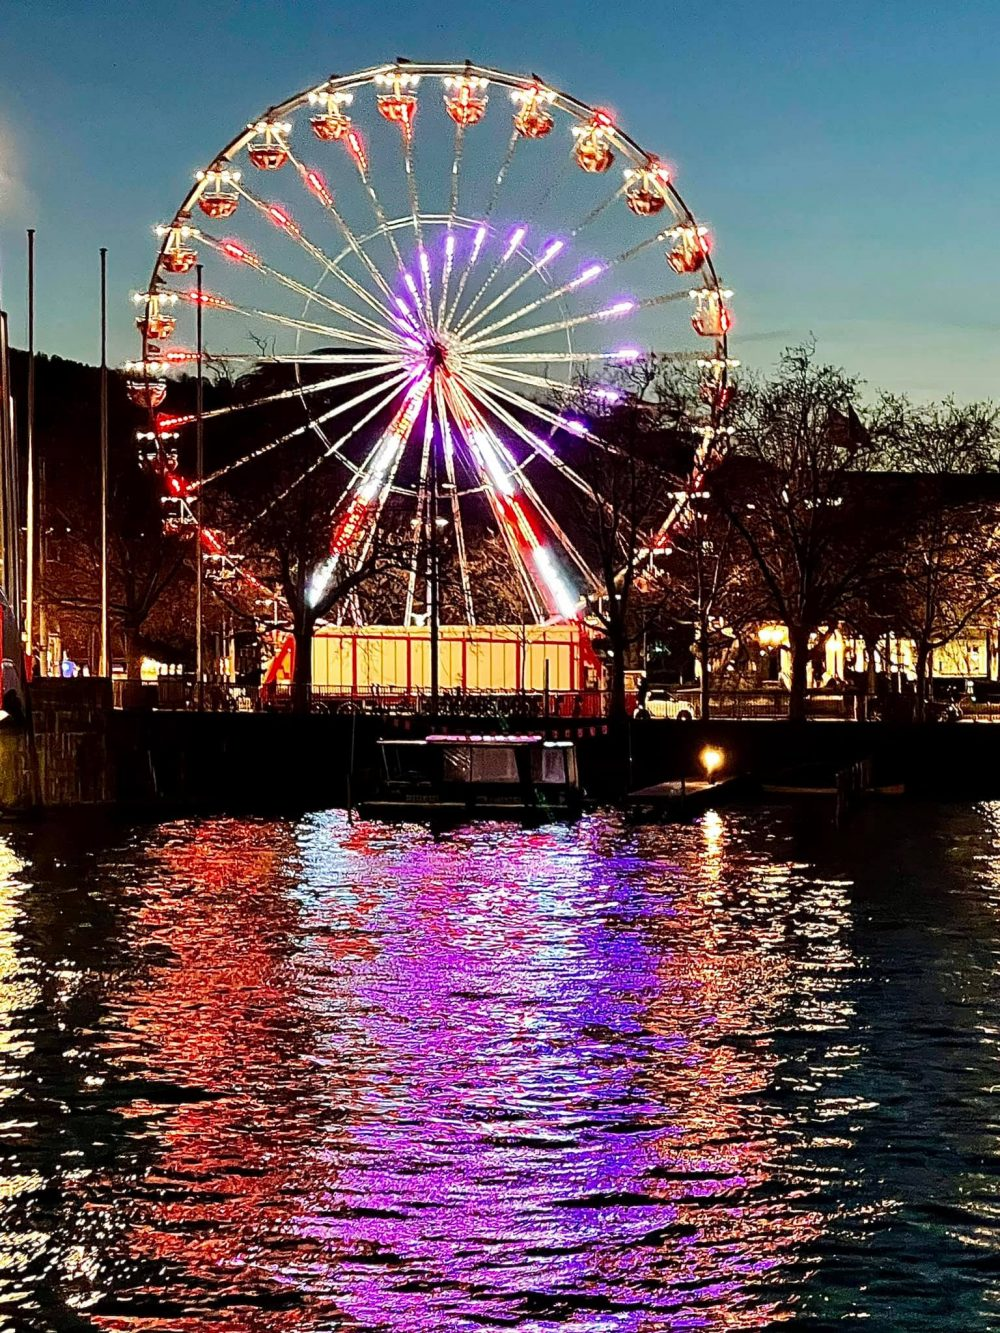 Have Fun On The Colourful Ferris Wheel In Zurich